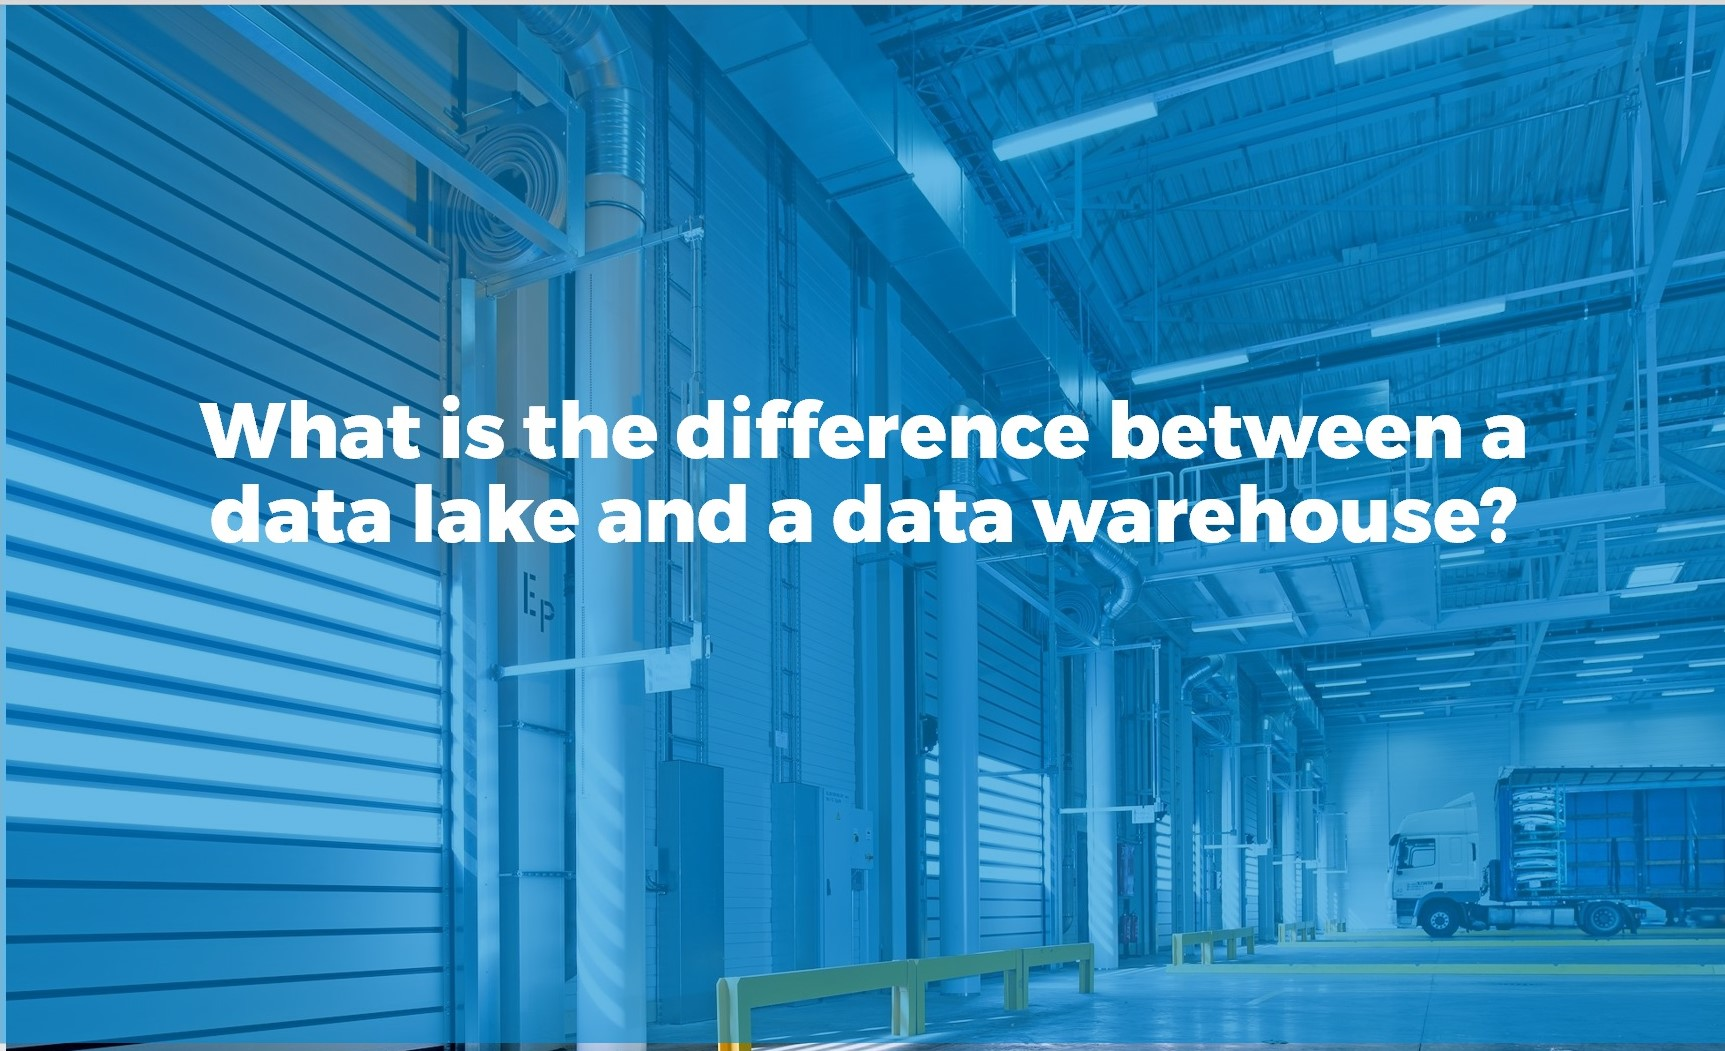 what is the difference between a data lake and a data warehouse